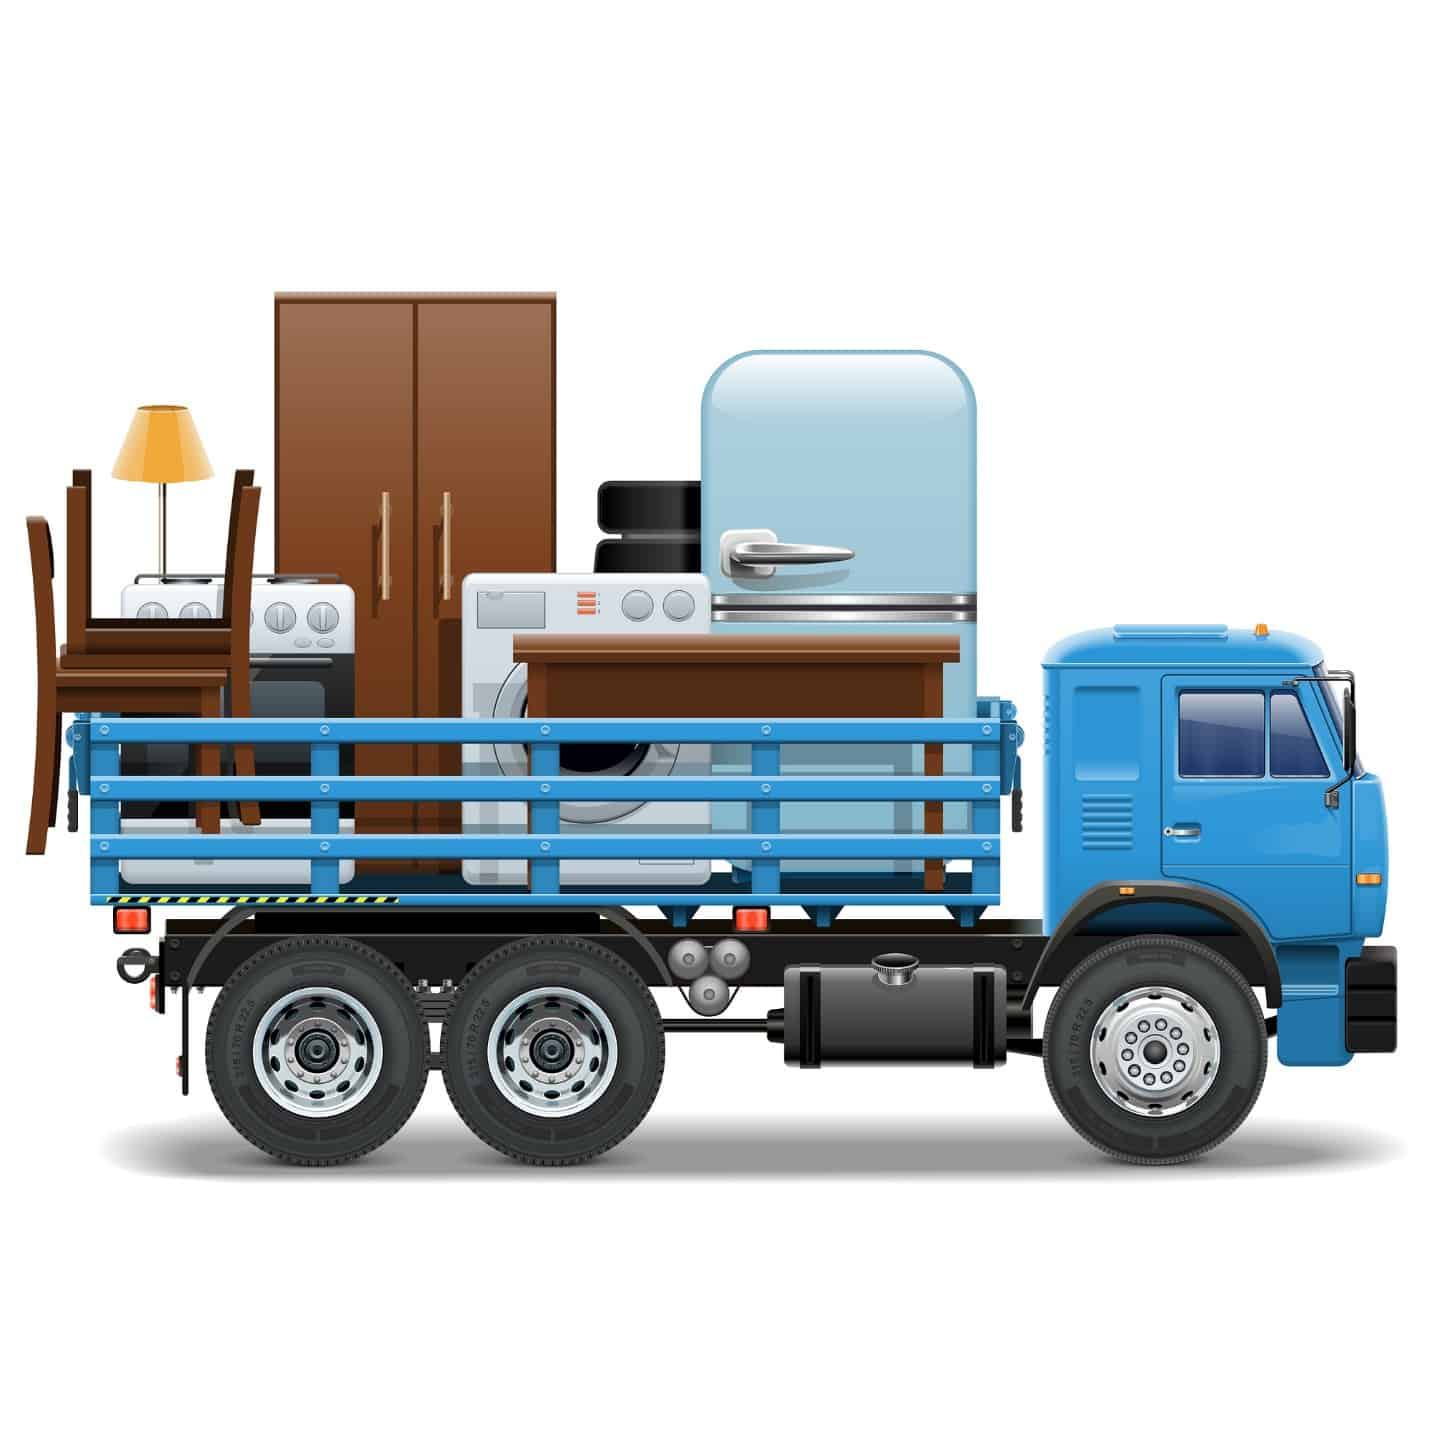 Hiring a Toronto Moving Company